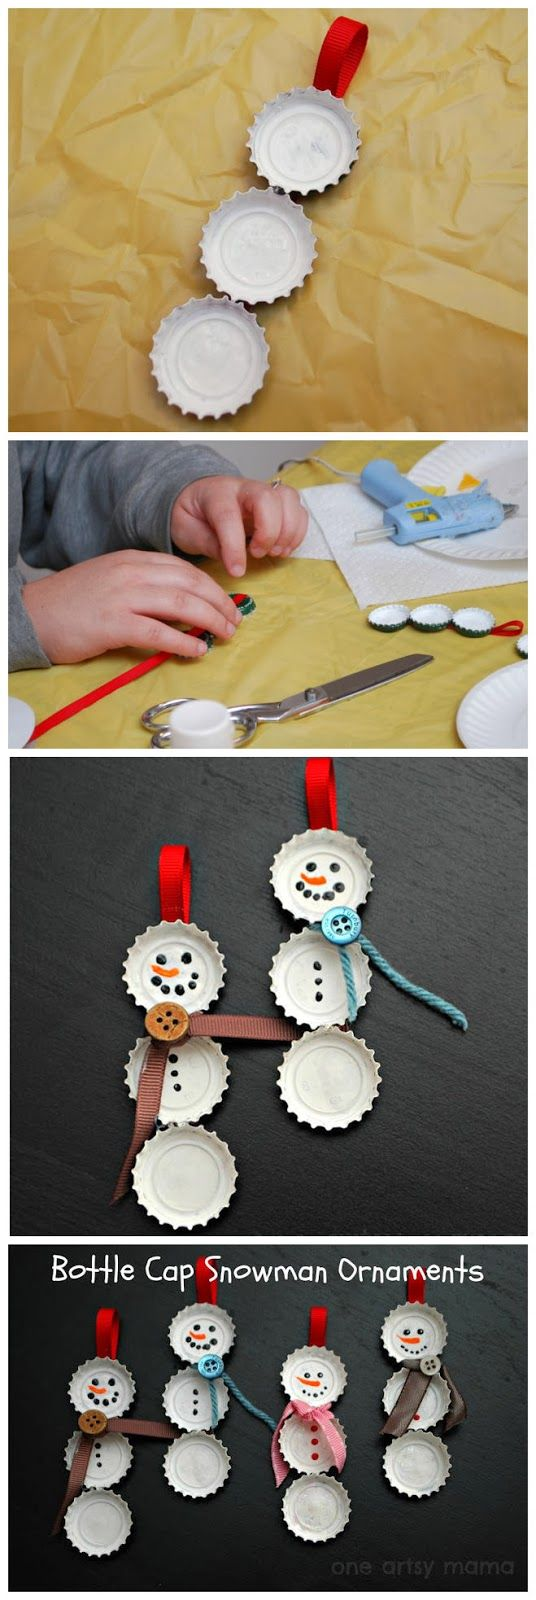 Don't throw away your bottle caps, turn them into Snowman Ornaments*****Follow our unique garden themed boards at www.pinterest.com/earthwormtec *****Follow us on www.facebook.com/earthwormtec for great organic gardening tips #DIY #christmas #repurpose